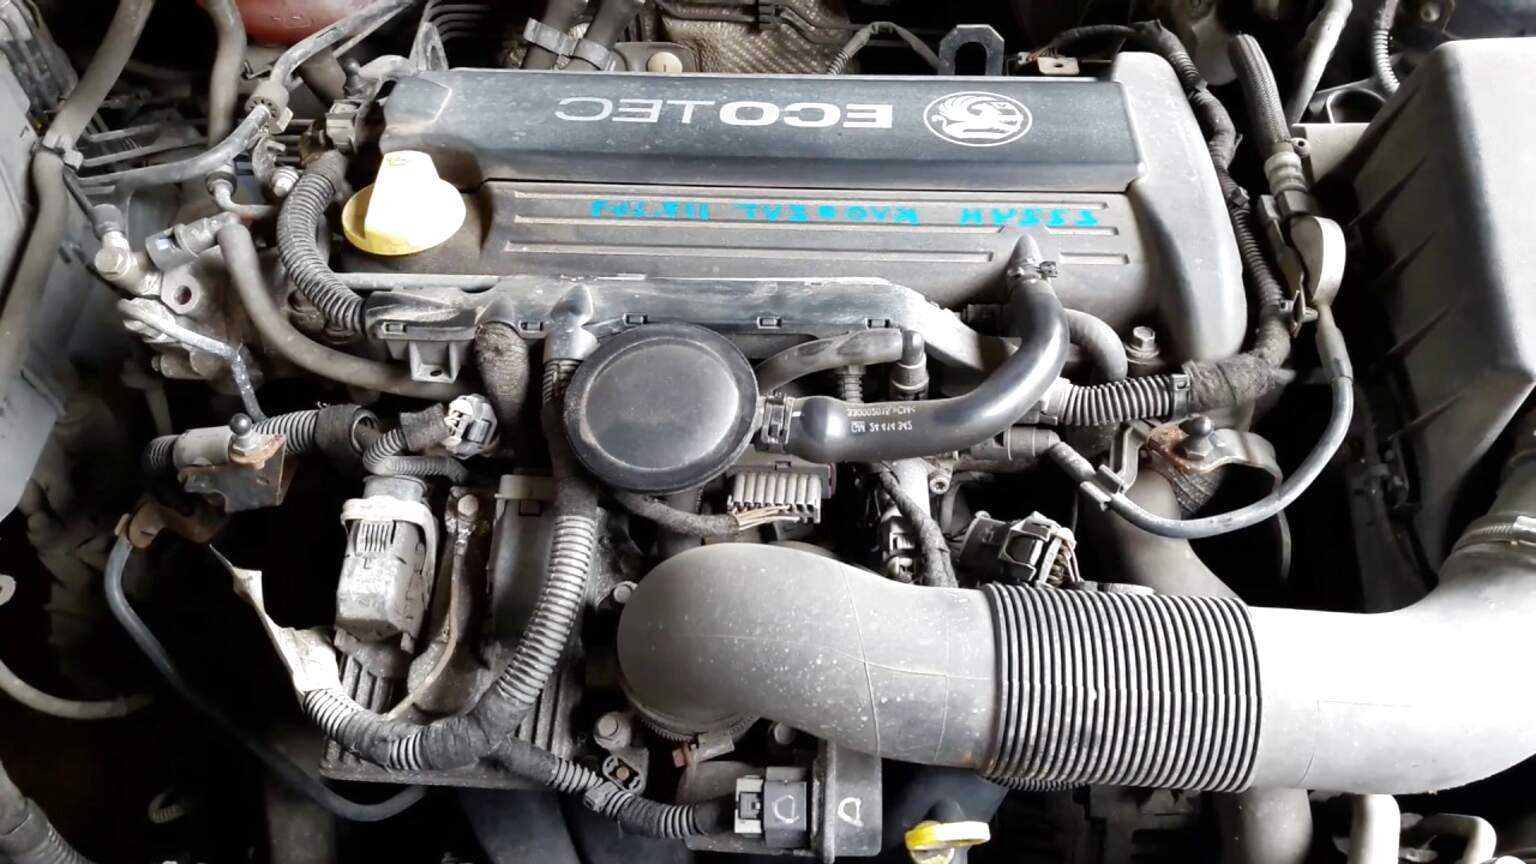 z22yh engine for sale